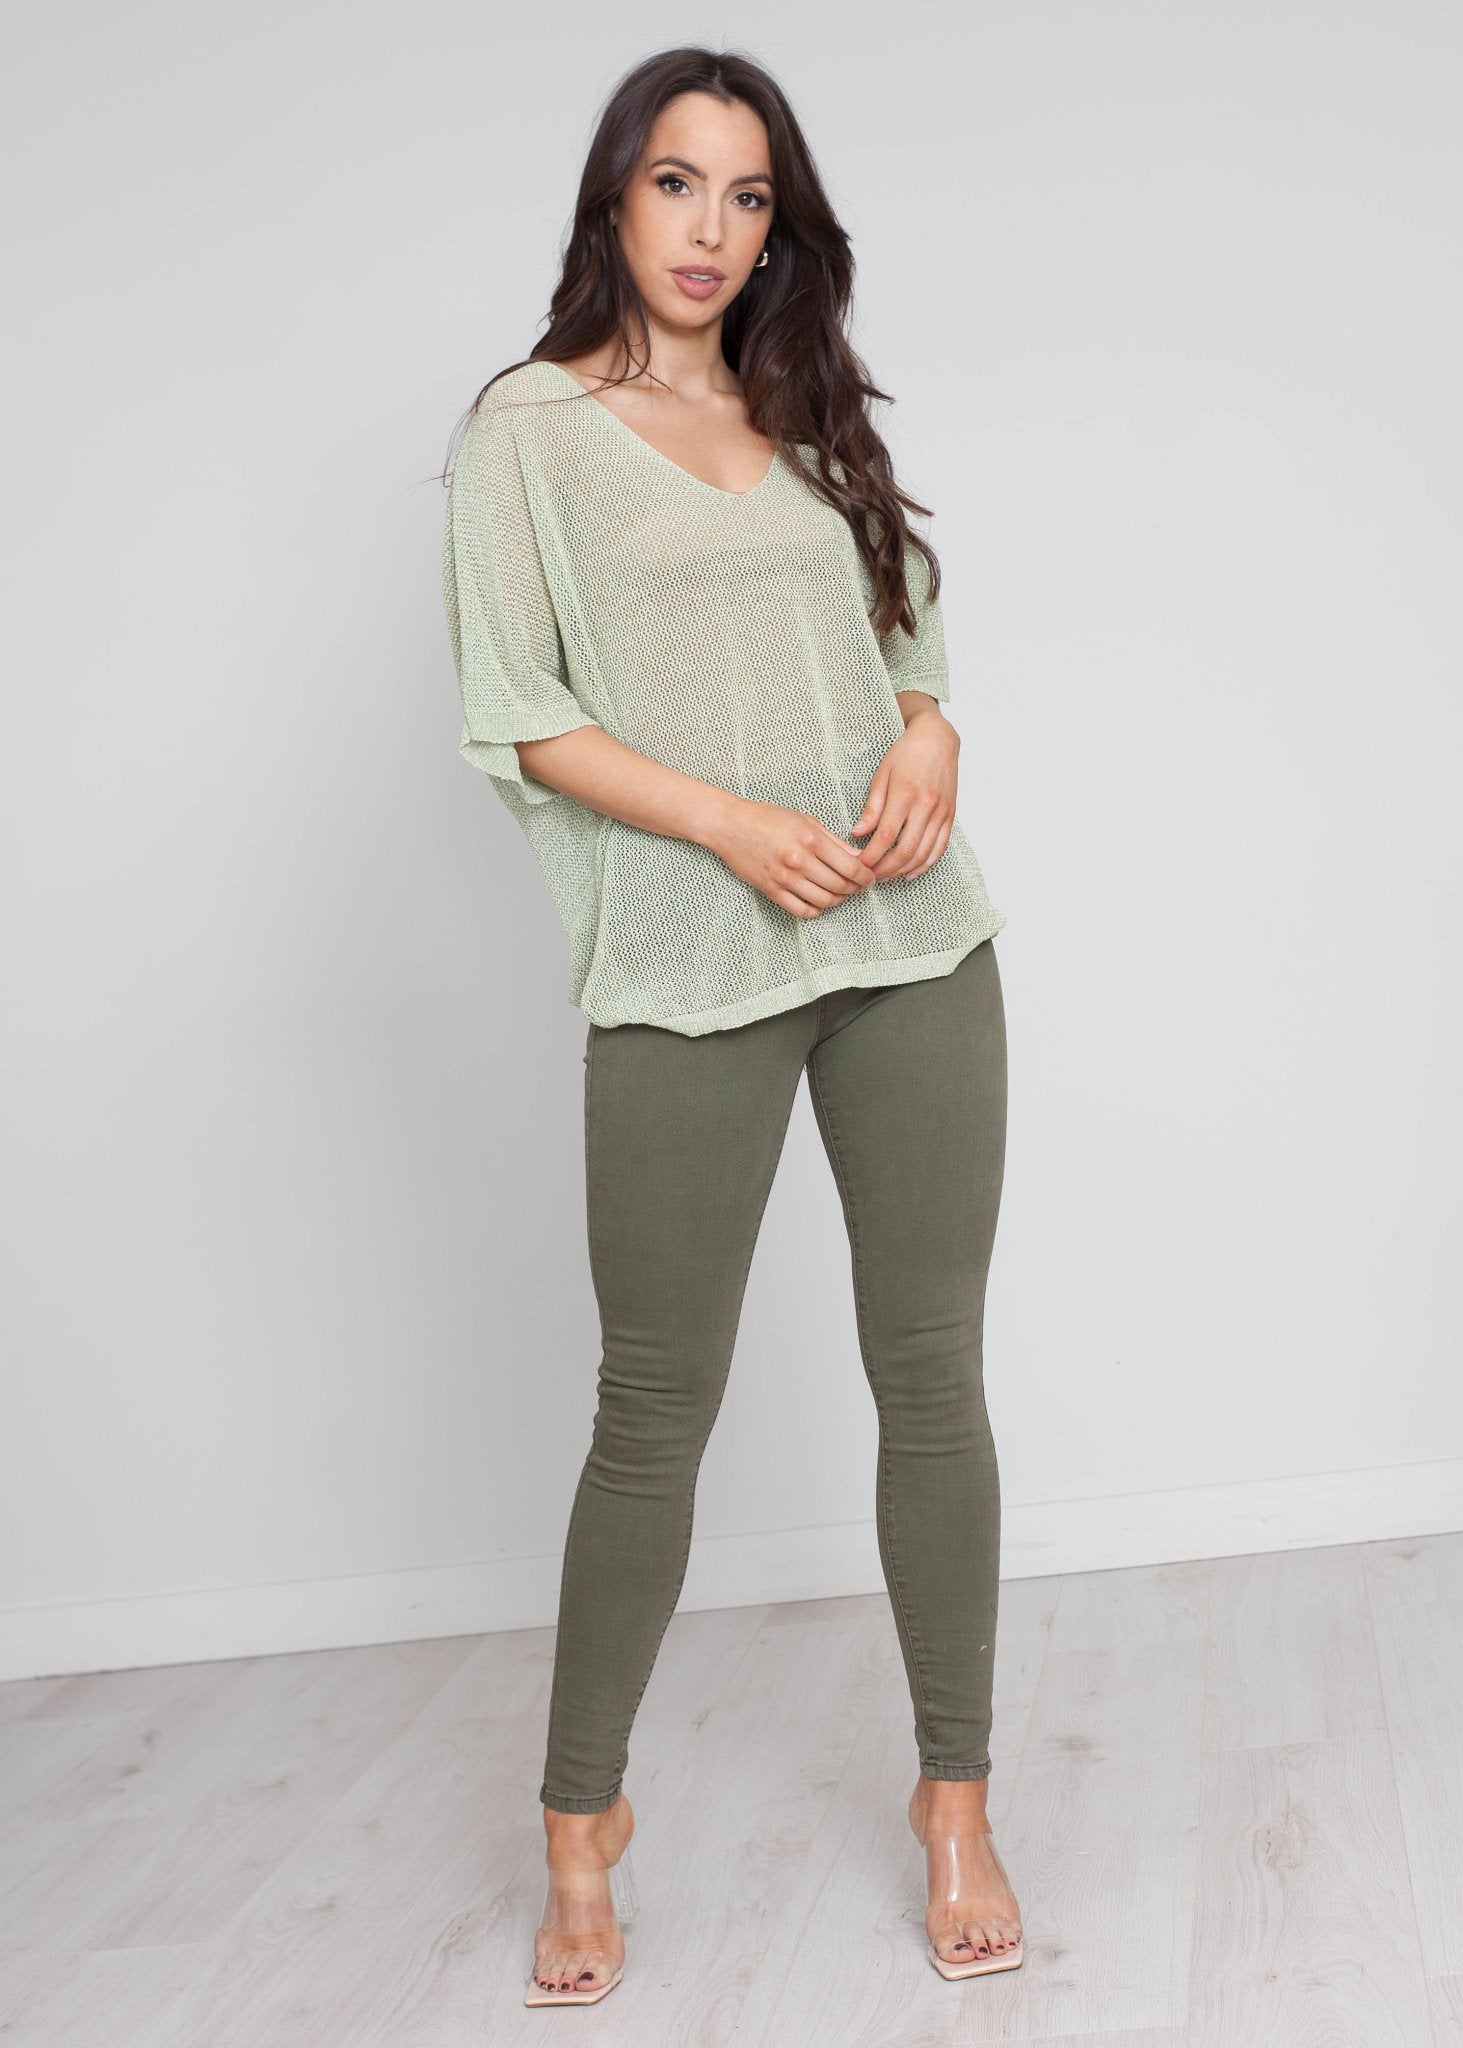 Heidi Shimmer Knit In Lime - The Walk in Wardrobe